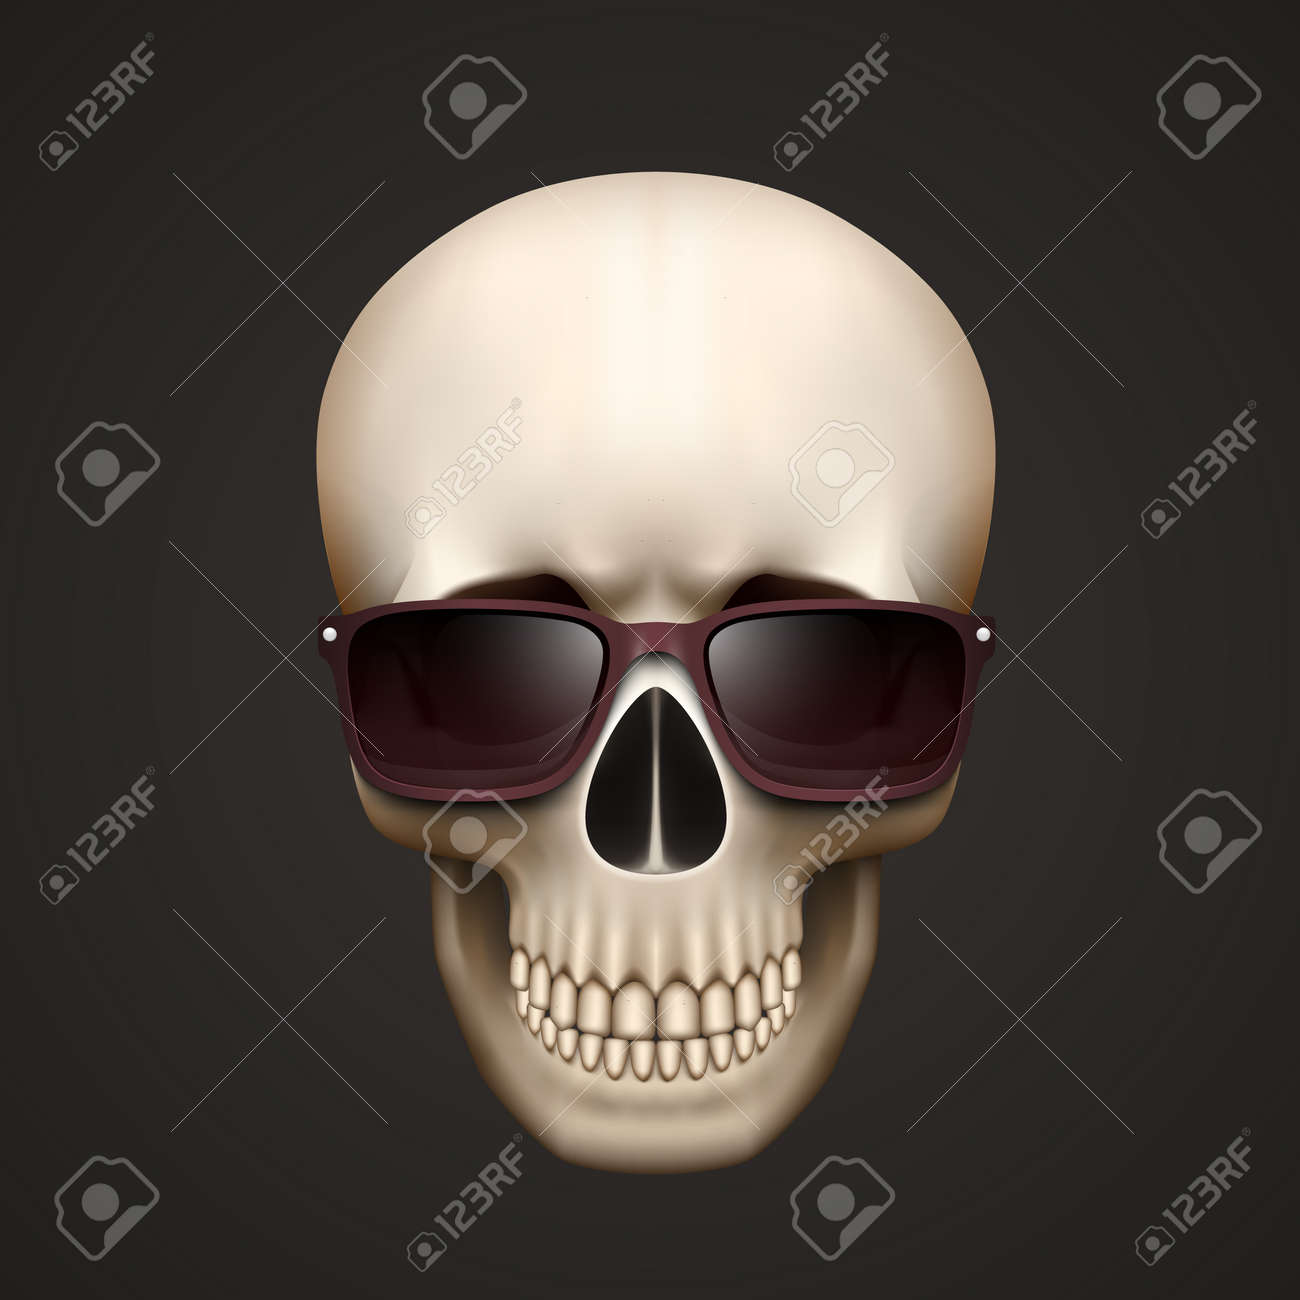 86be807ecfc Human skull isolated with sunglasses. Vector illustration Stock Vector -  35951155